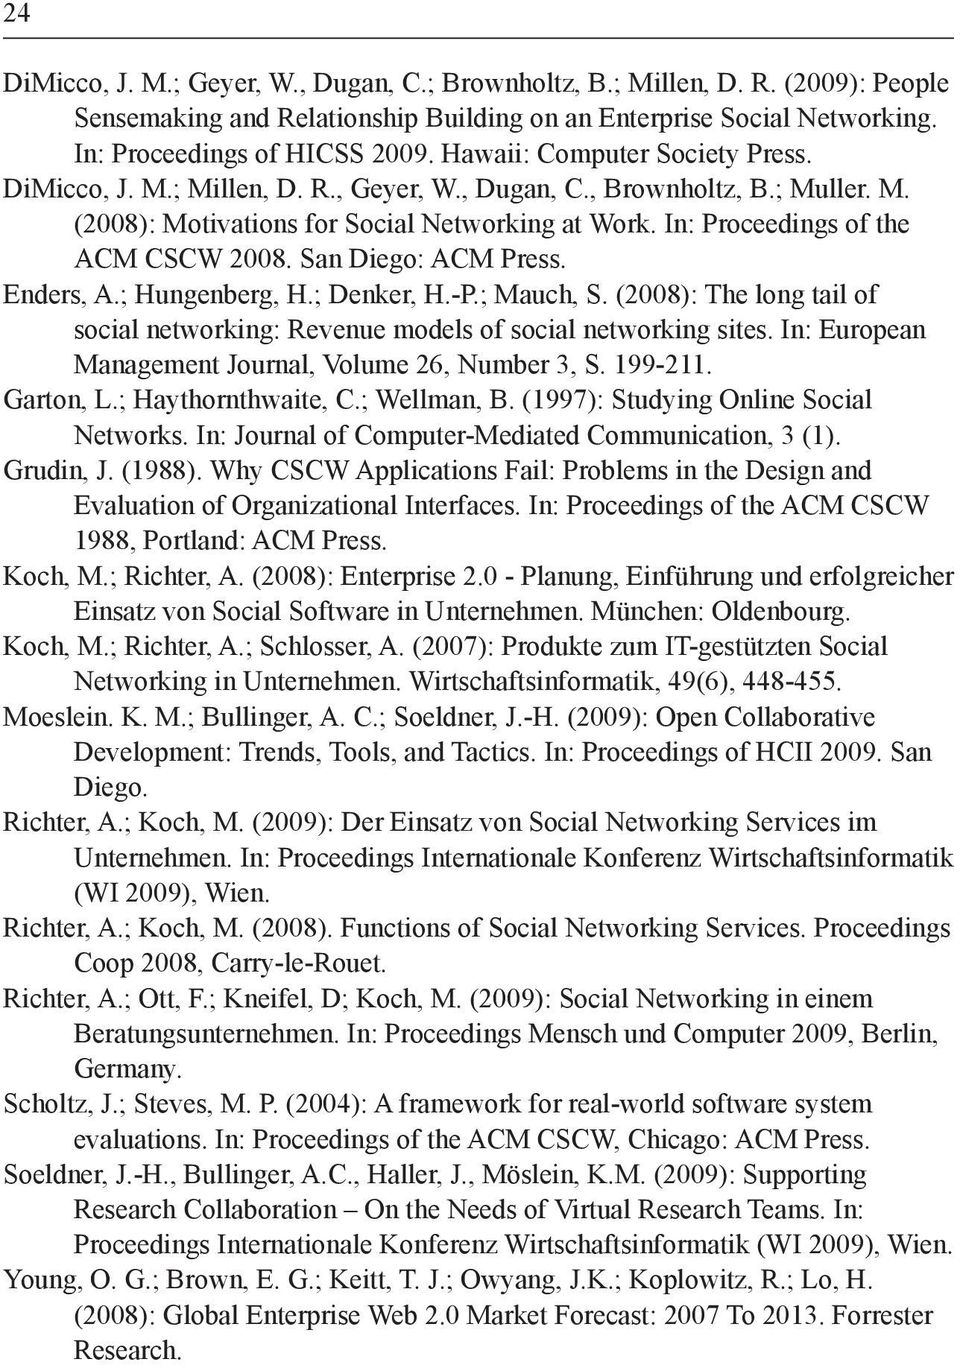 San Diego: ACM Press. Enders, A.; Hungenberg, H.; Denker, H.-P.; Mauch, S. (2008): The long tail of social networking: Revenue models of social networking sites.